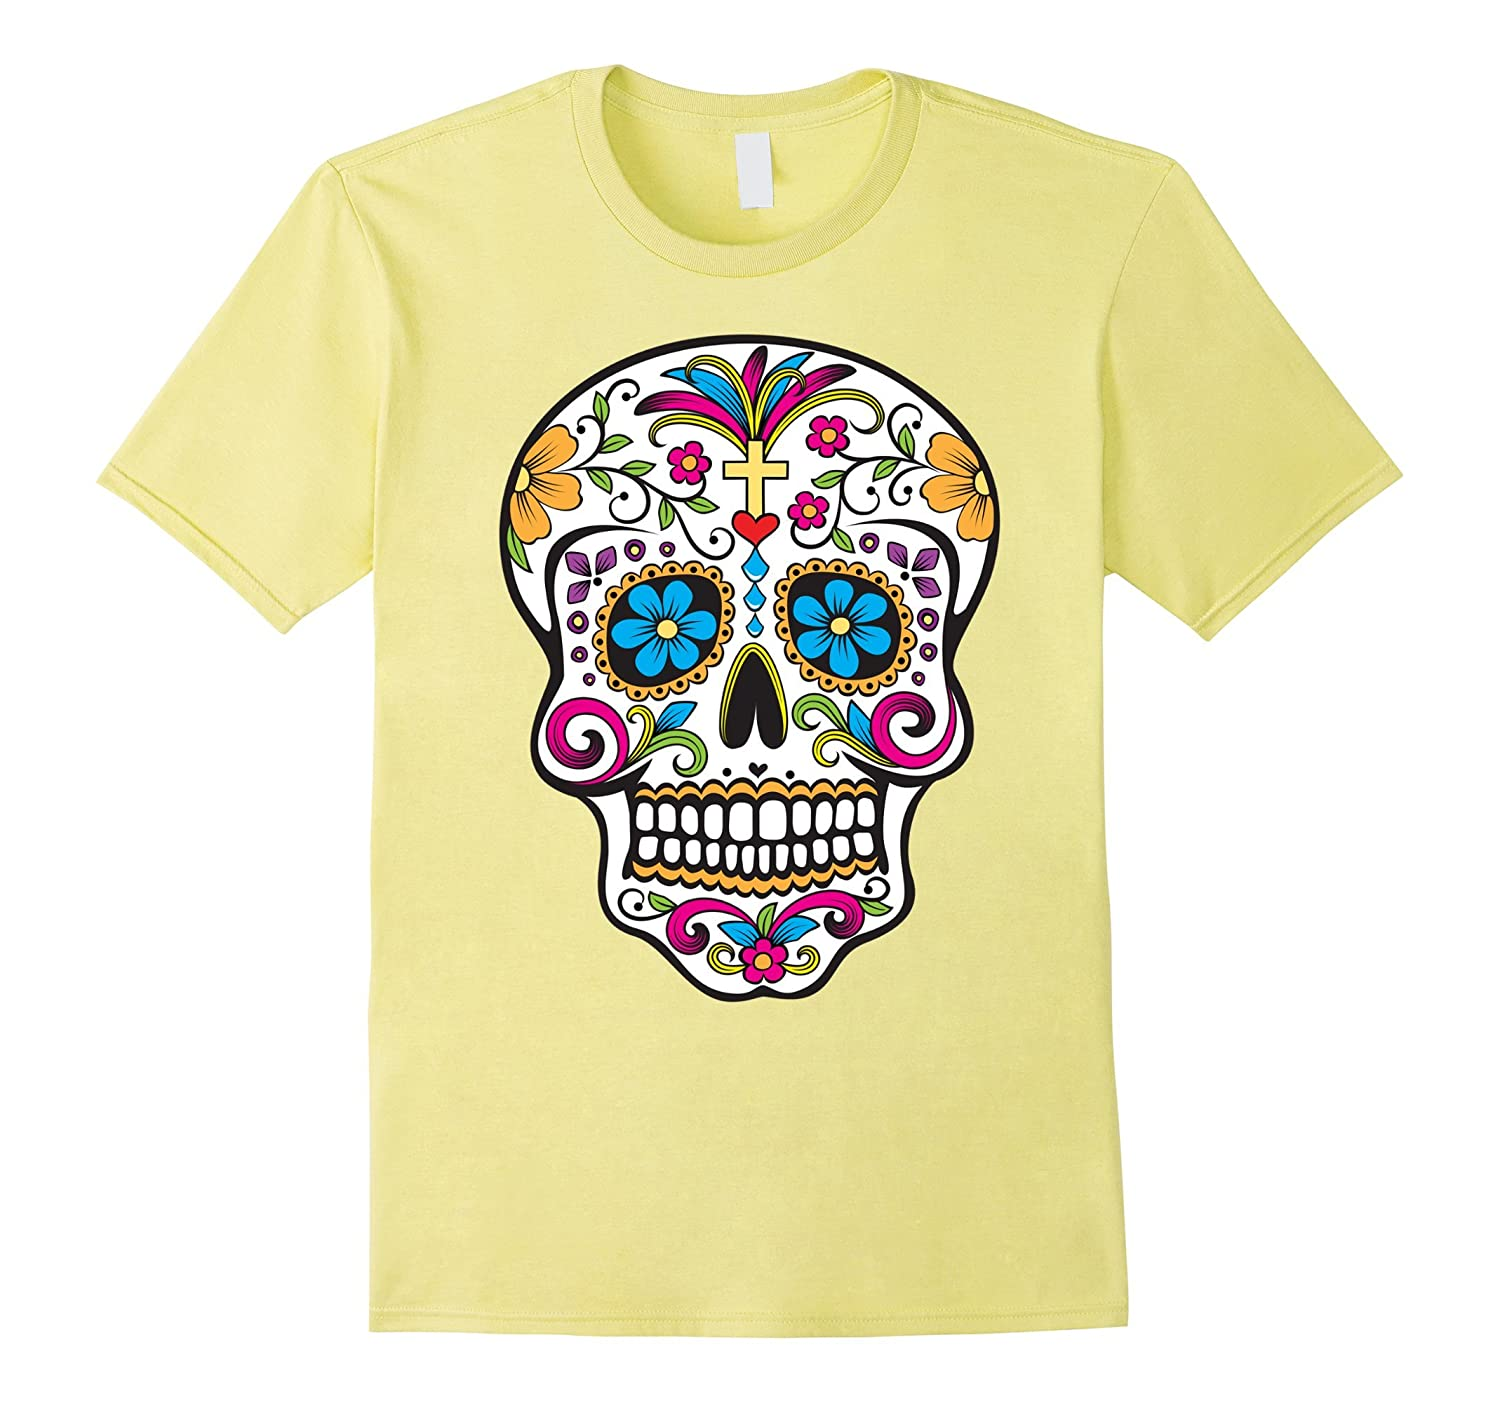 03768d1b1 Day of the Dead Sugar Skull T-Shirt-ANZ - Anztshirt